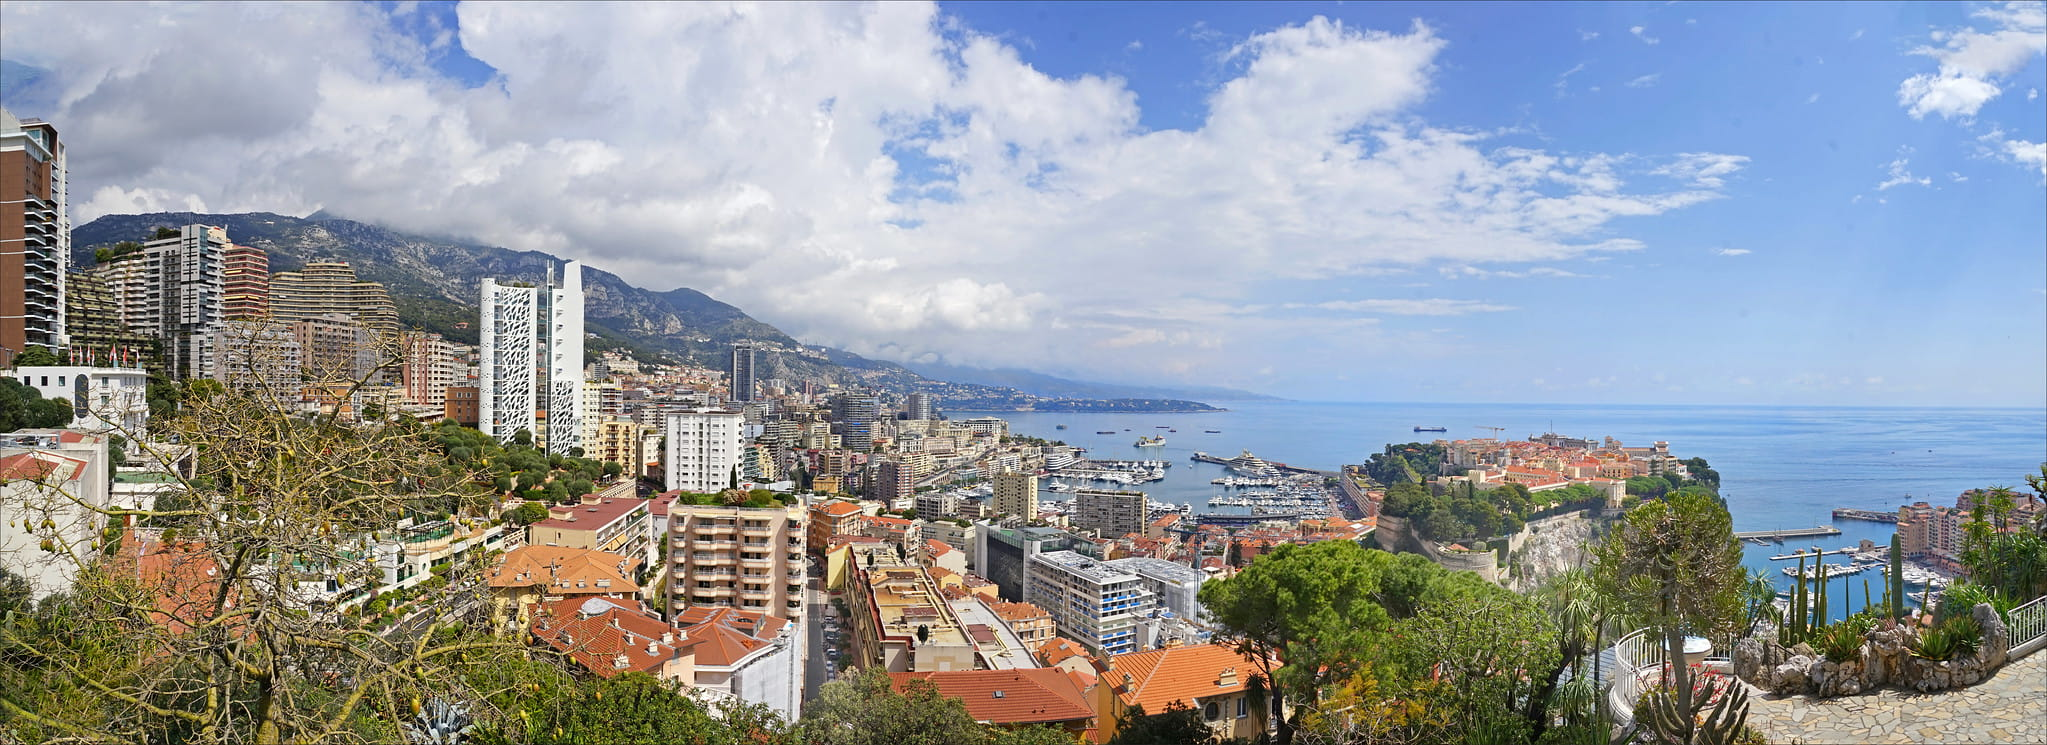 View of Monaco with the Odeon Tour and the Rock.